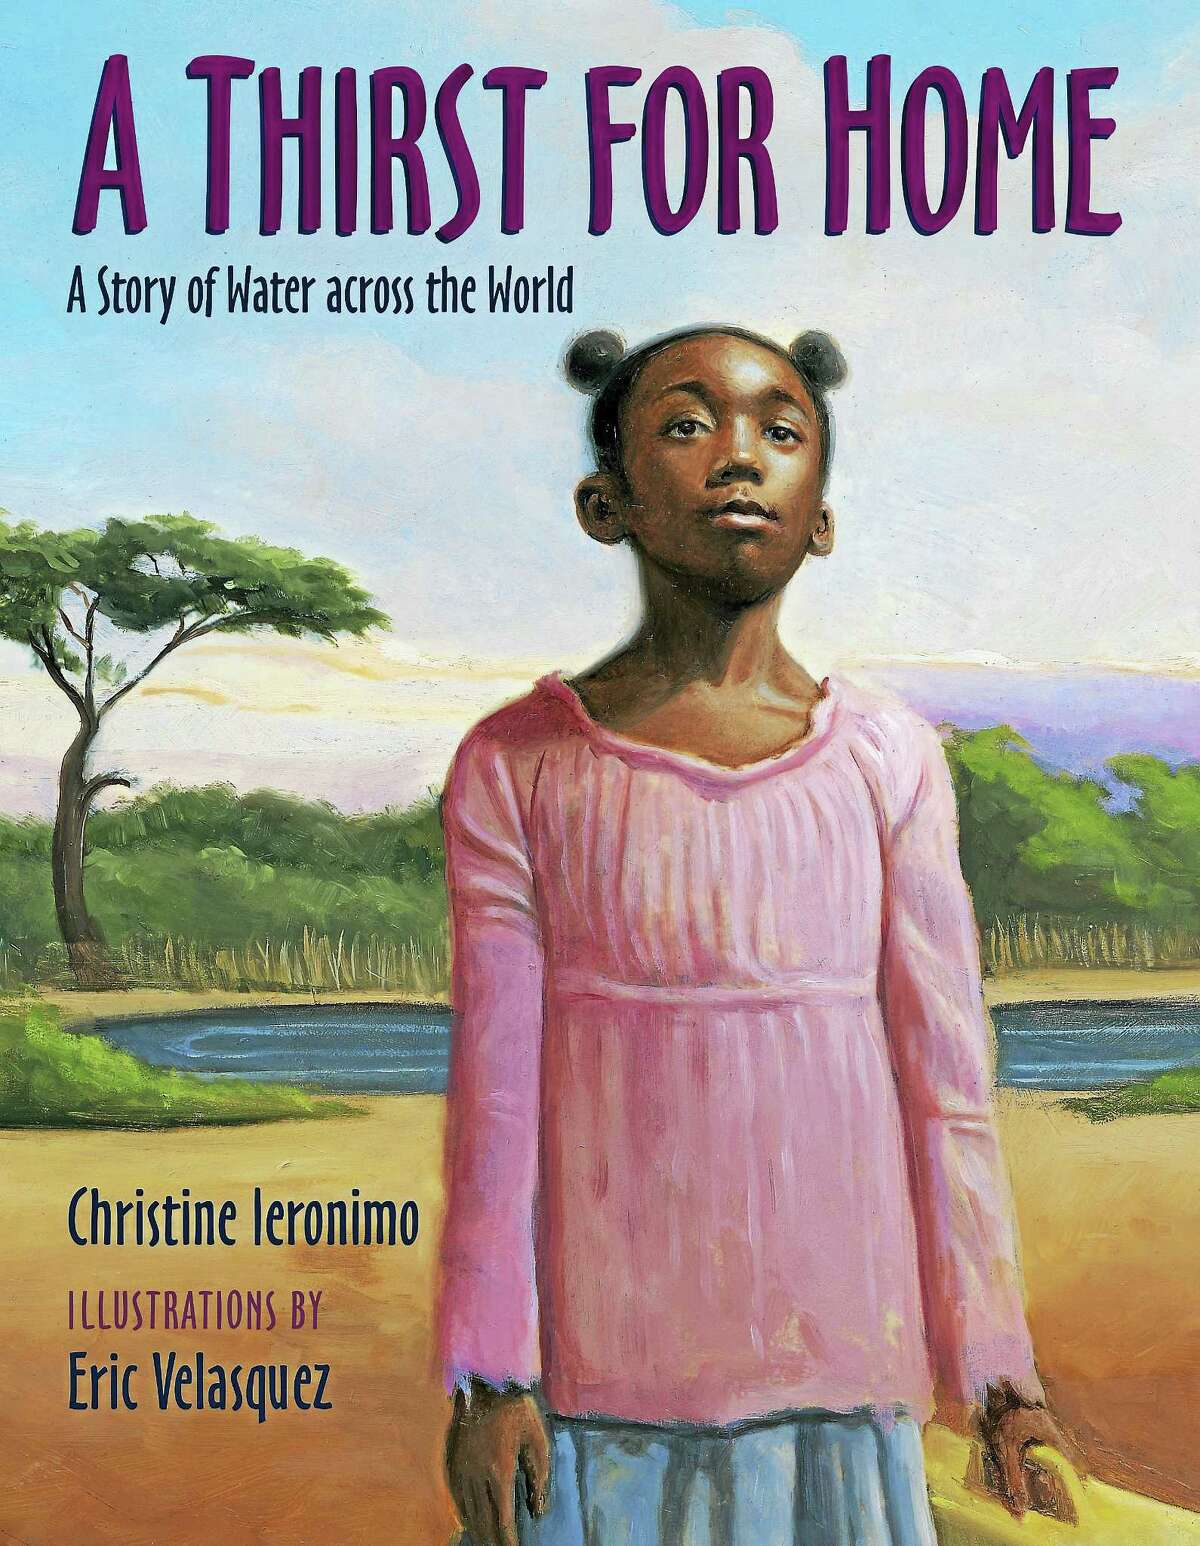 """""""A Thirst for Home"""" explores the need for clean drinking water around the world. The book was written by Christine Ieronimo."""